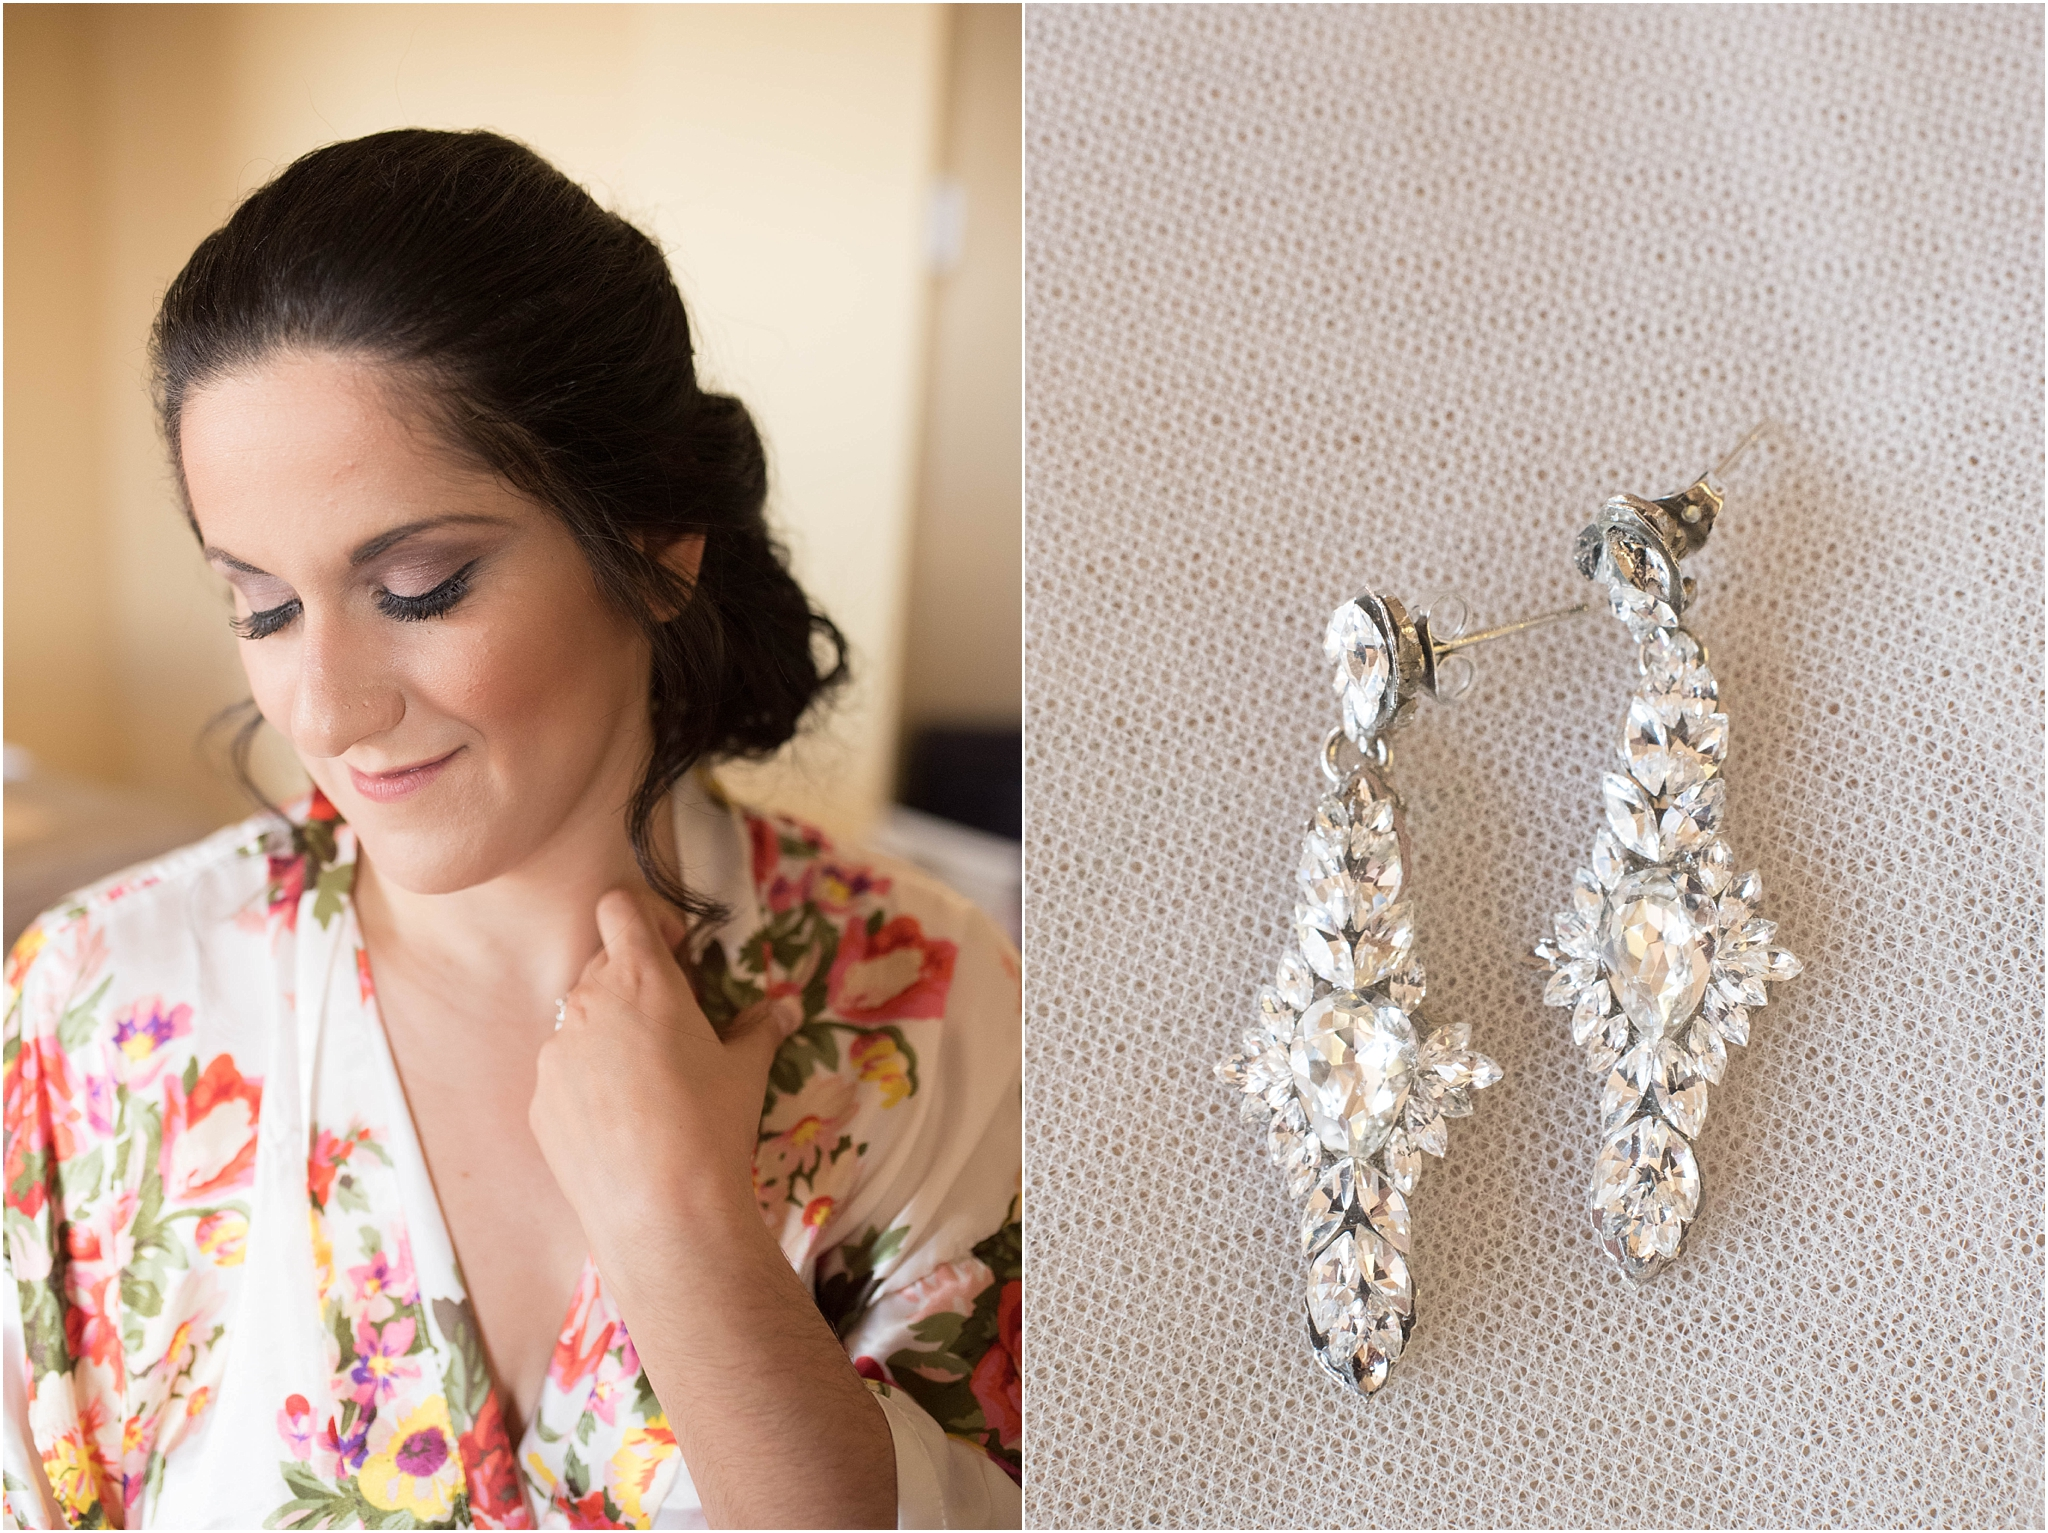 kayla kitts photography - new mexico wedding photographer - albuquerque botanic gardens - hotel albuquerque_0003.jpg